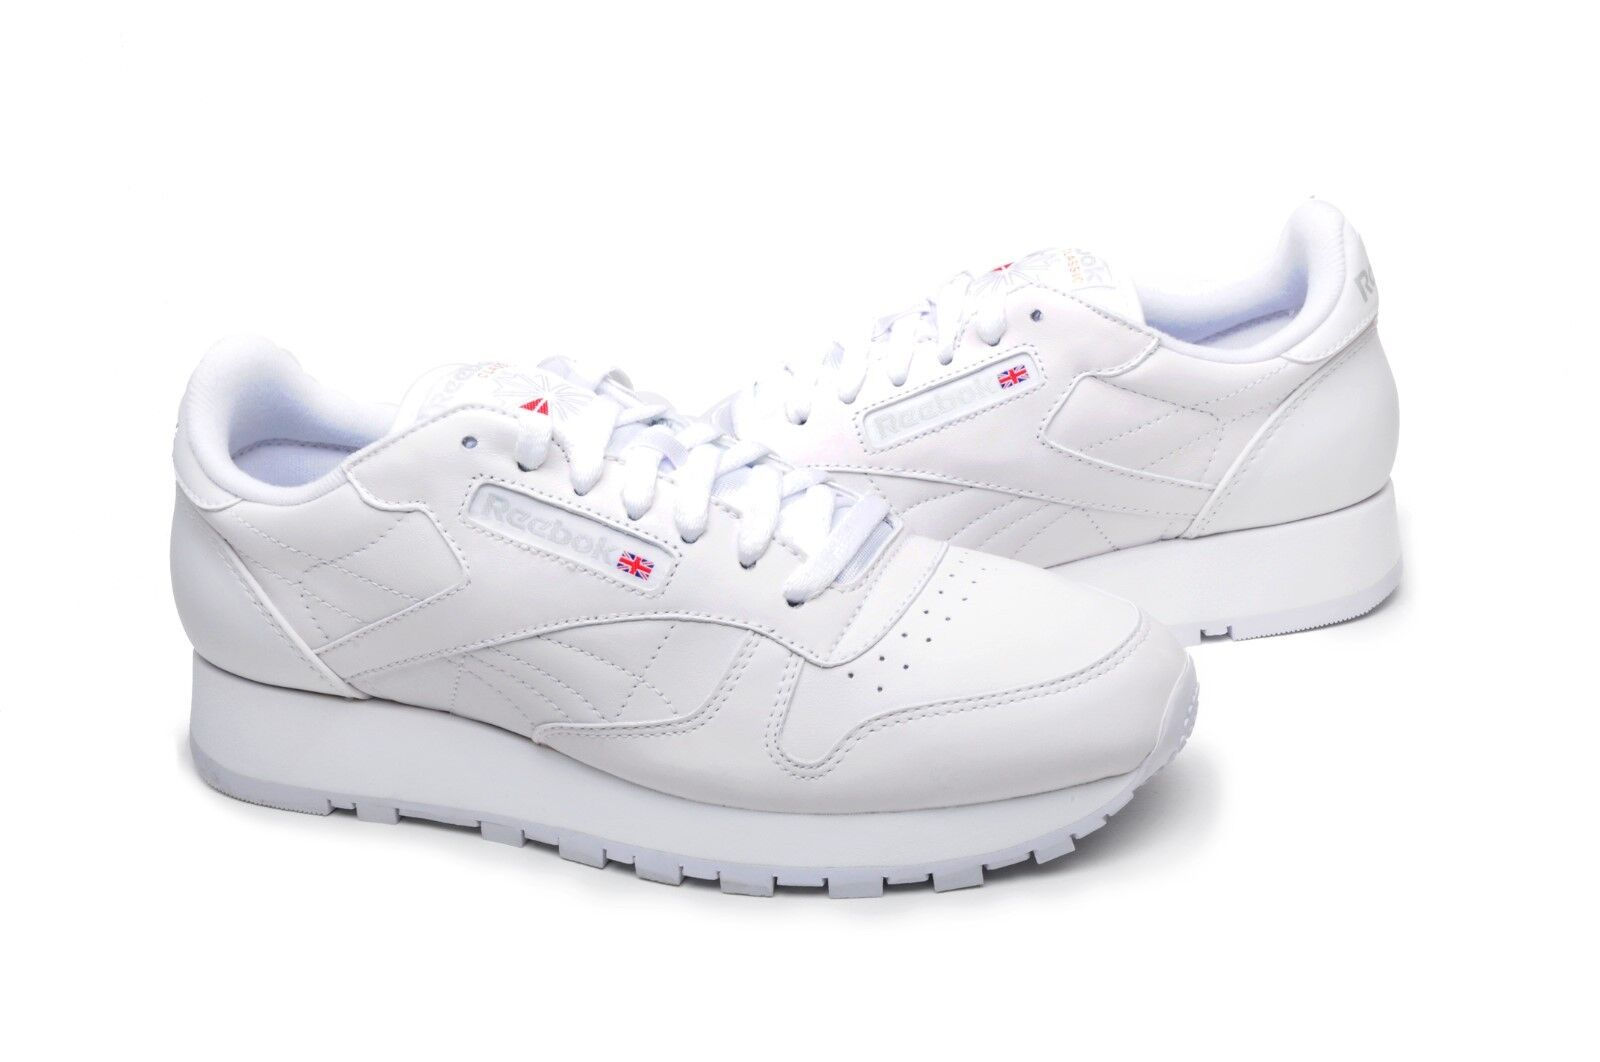 Reebok Homme Chaussures Classic Leather 9771 Blanc